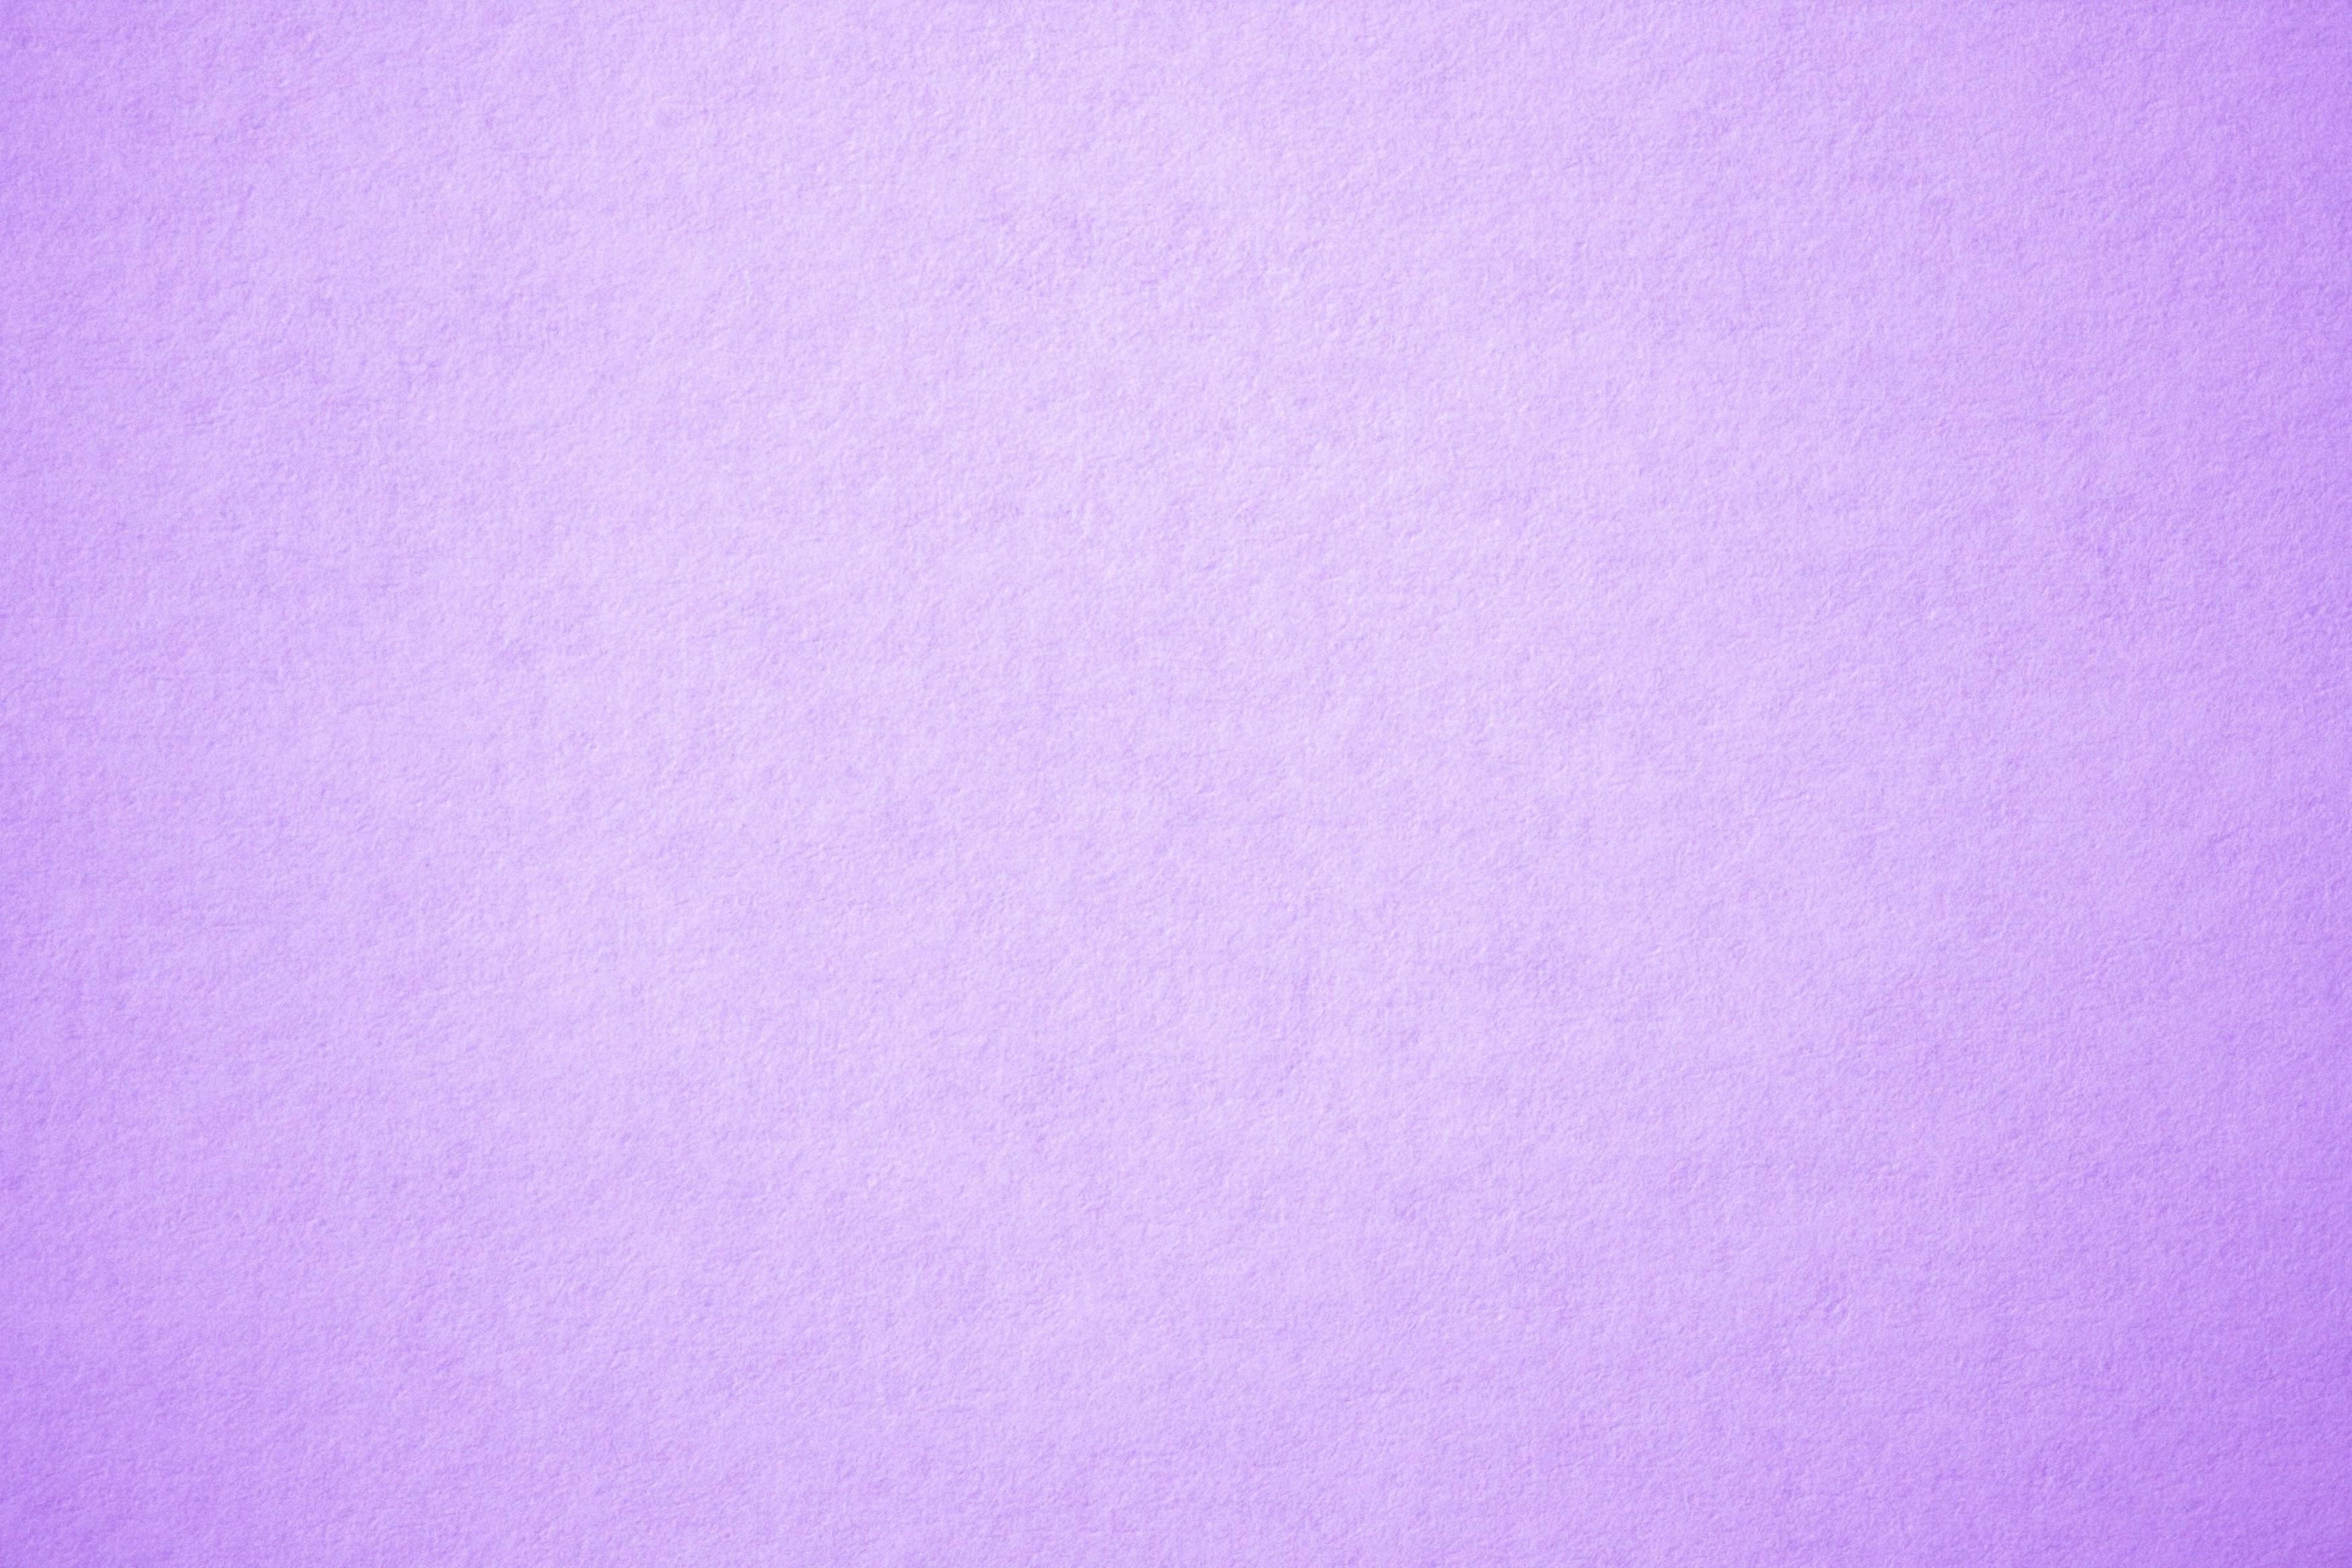 Pastel Purple Aesthetic Wallpapers Wallpaper Cave